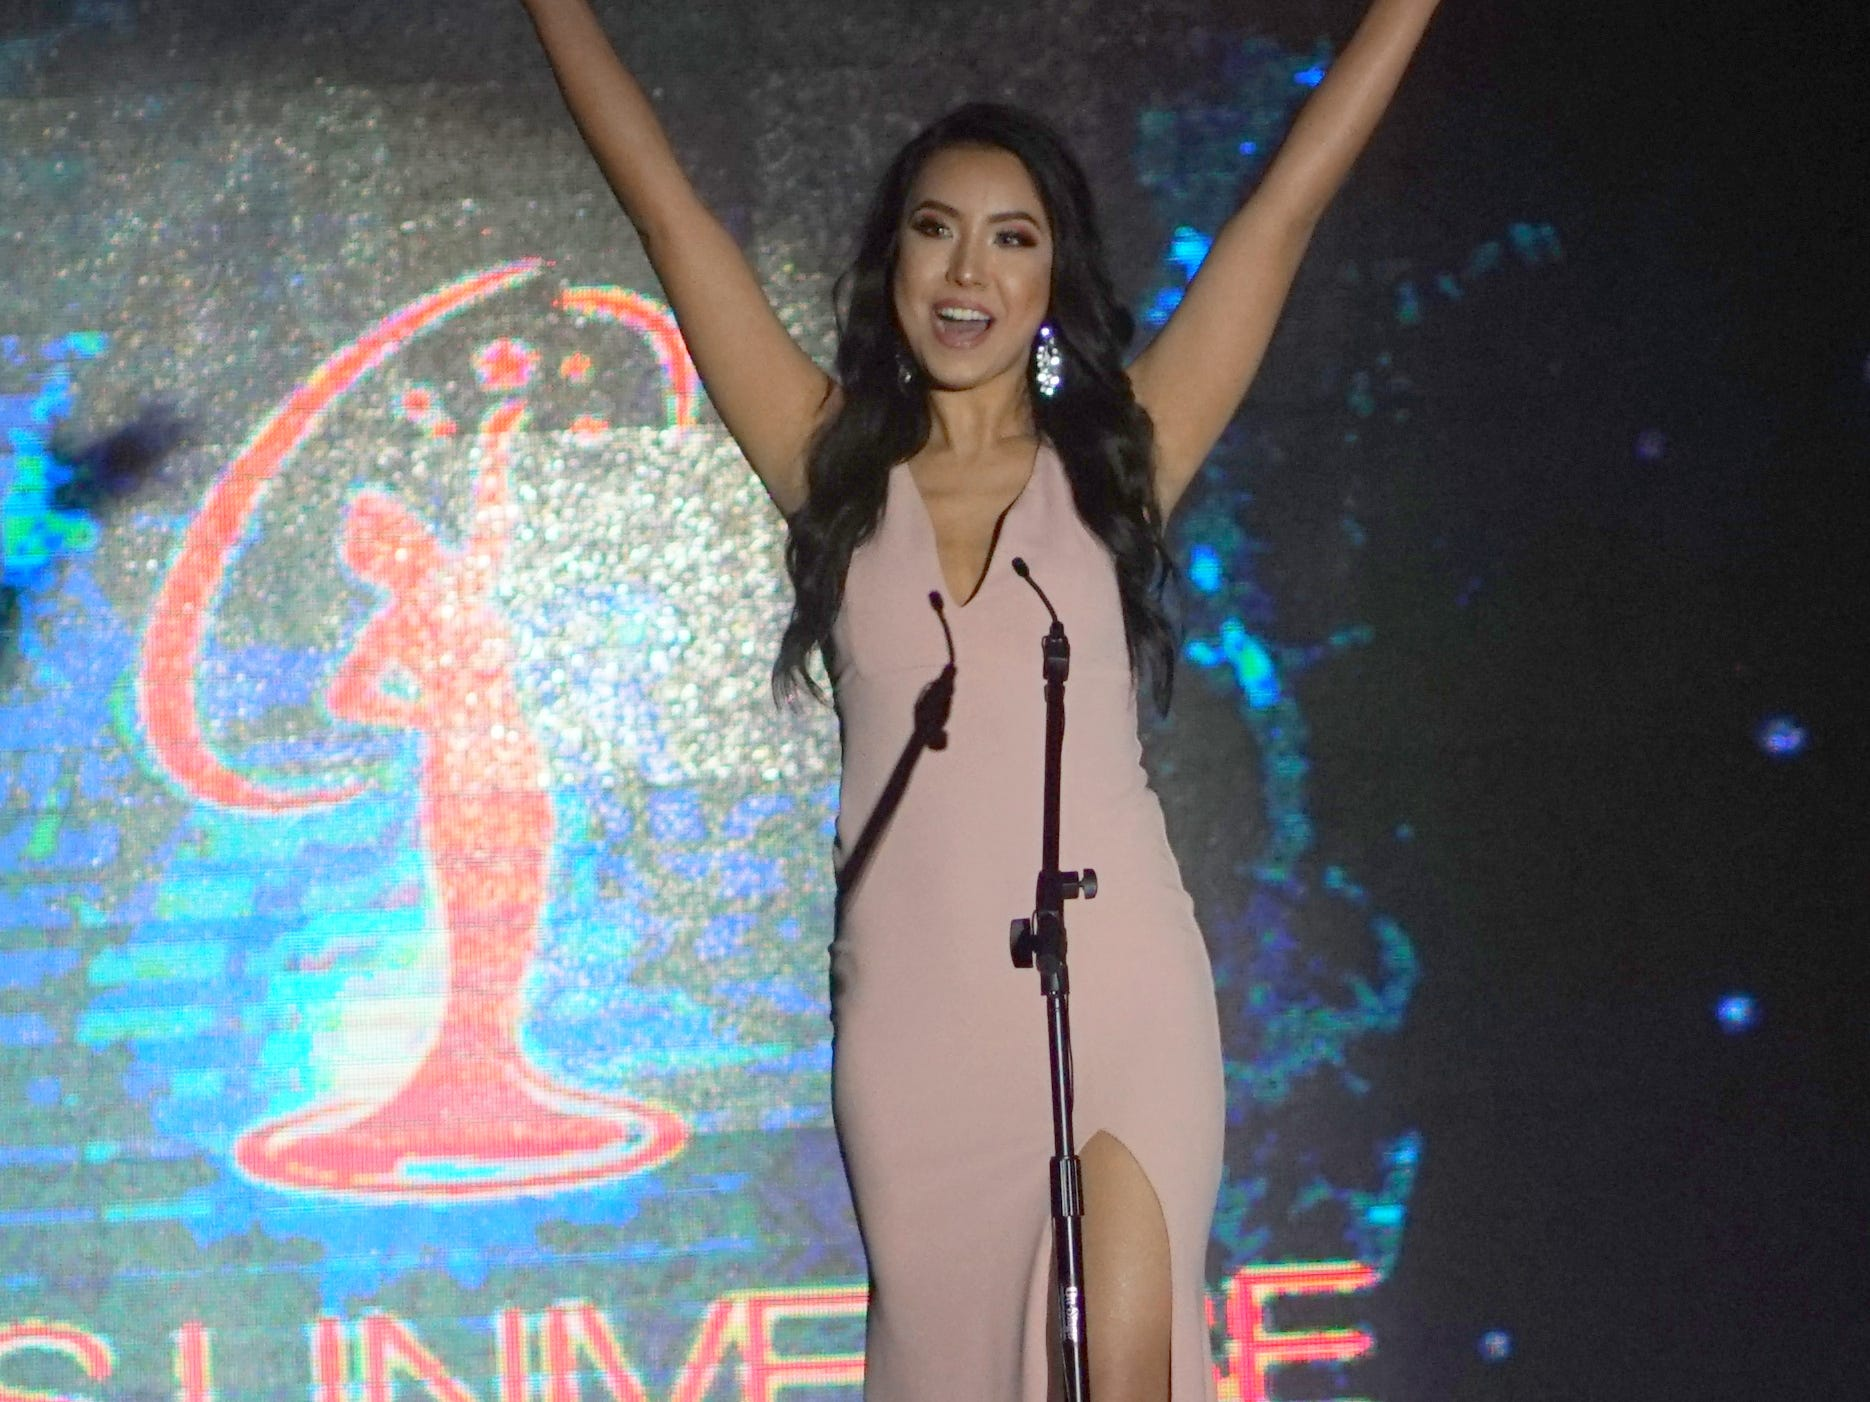 Miss Universe Guam Pageant opening ceremony with contestant 10 Kirsten Dahilig.  The pageant was held at  Sheraton Laguna Guam Resort.